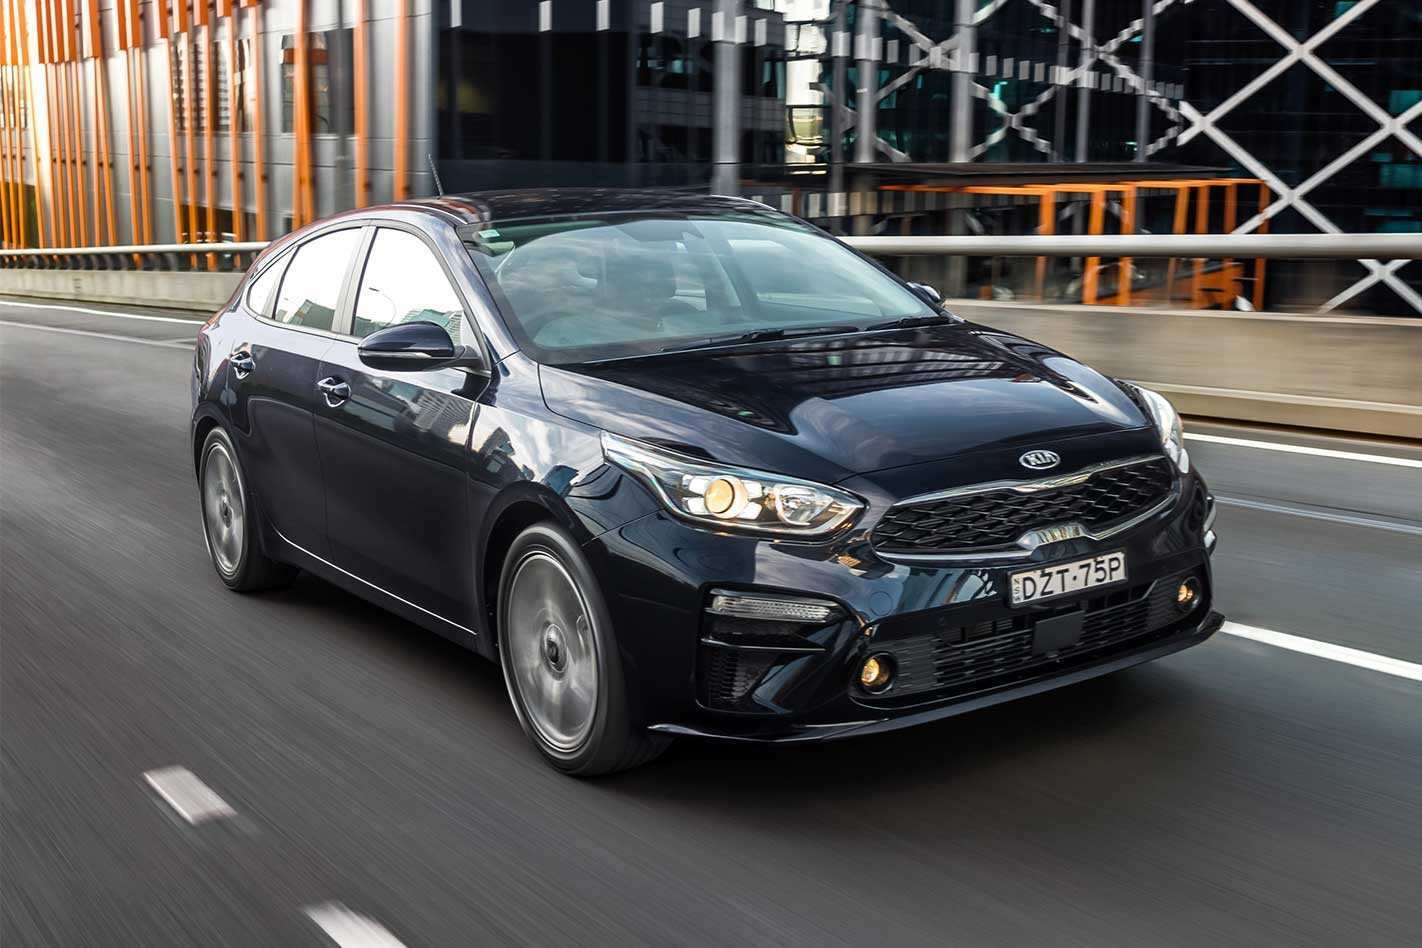 33 New Kia Cerato Hatch 2019 Review Reviews by Kia Cerato Hatch 2019 Review